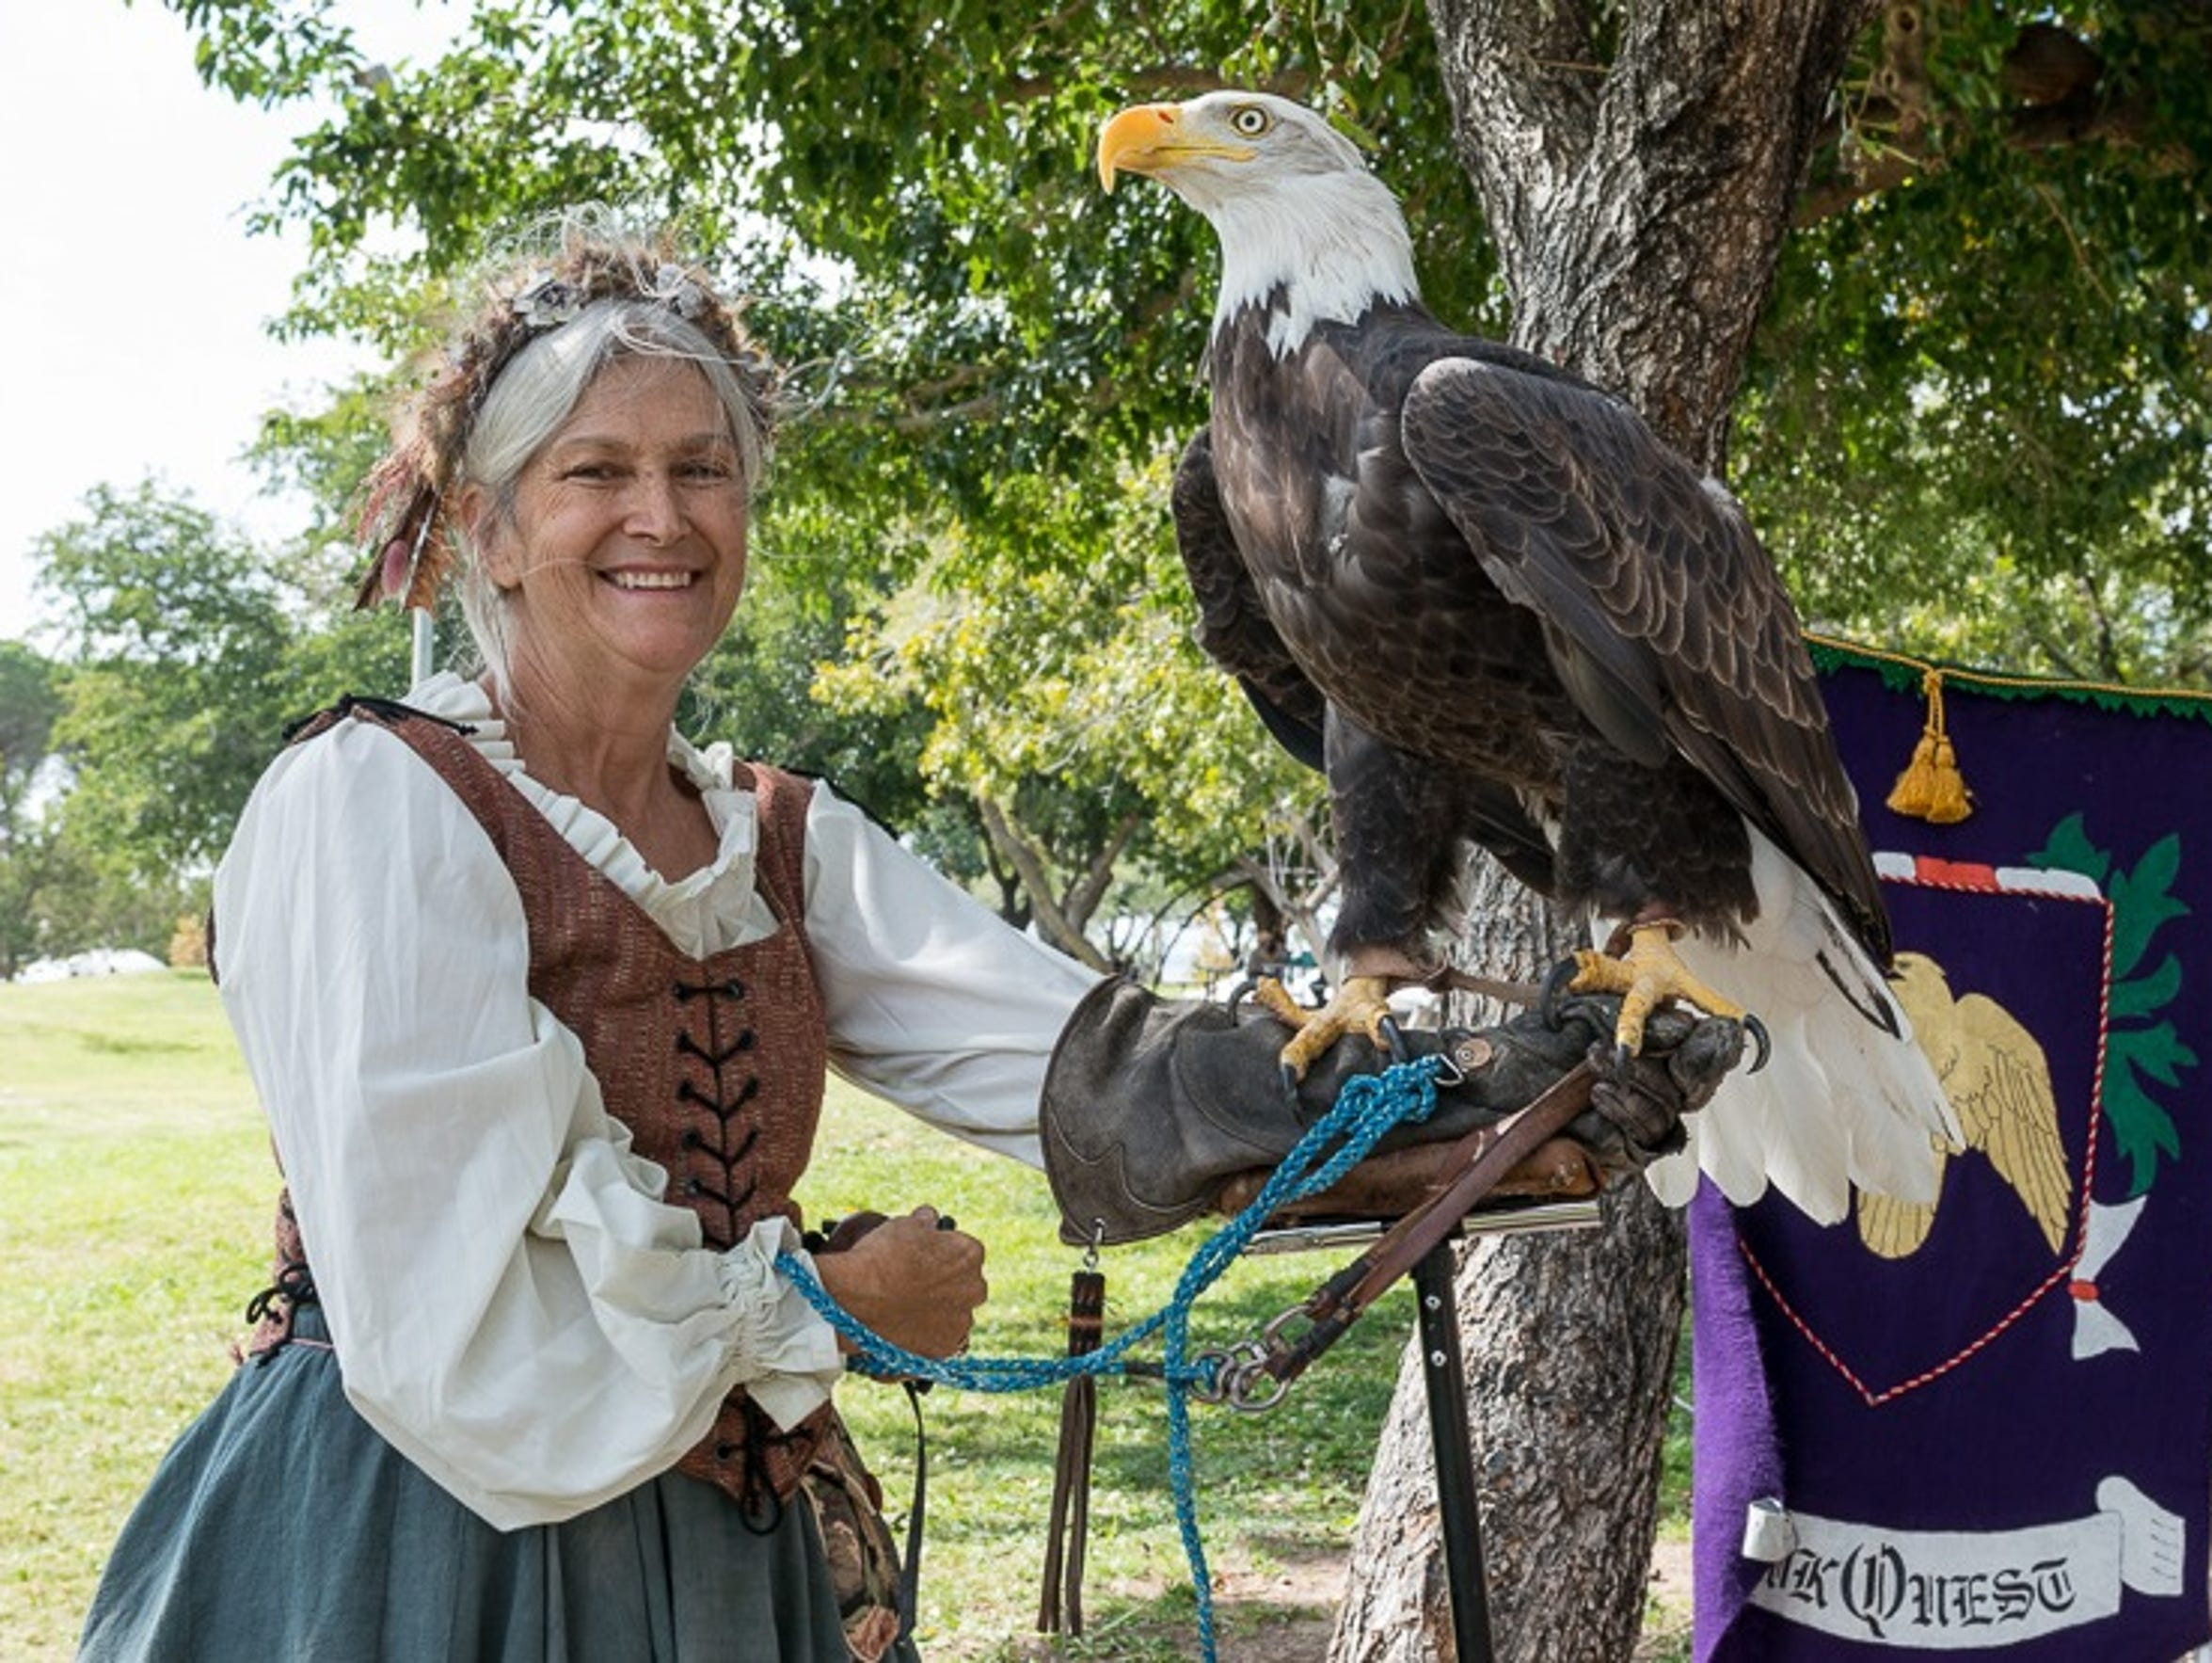 HawkQuest, a Colorado-based nonprofit organization, will visit the Renaissance ArtsFaire for the 12th time. The popular attraction showcases birds of prey.